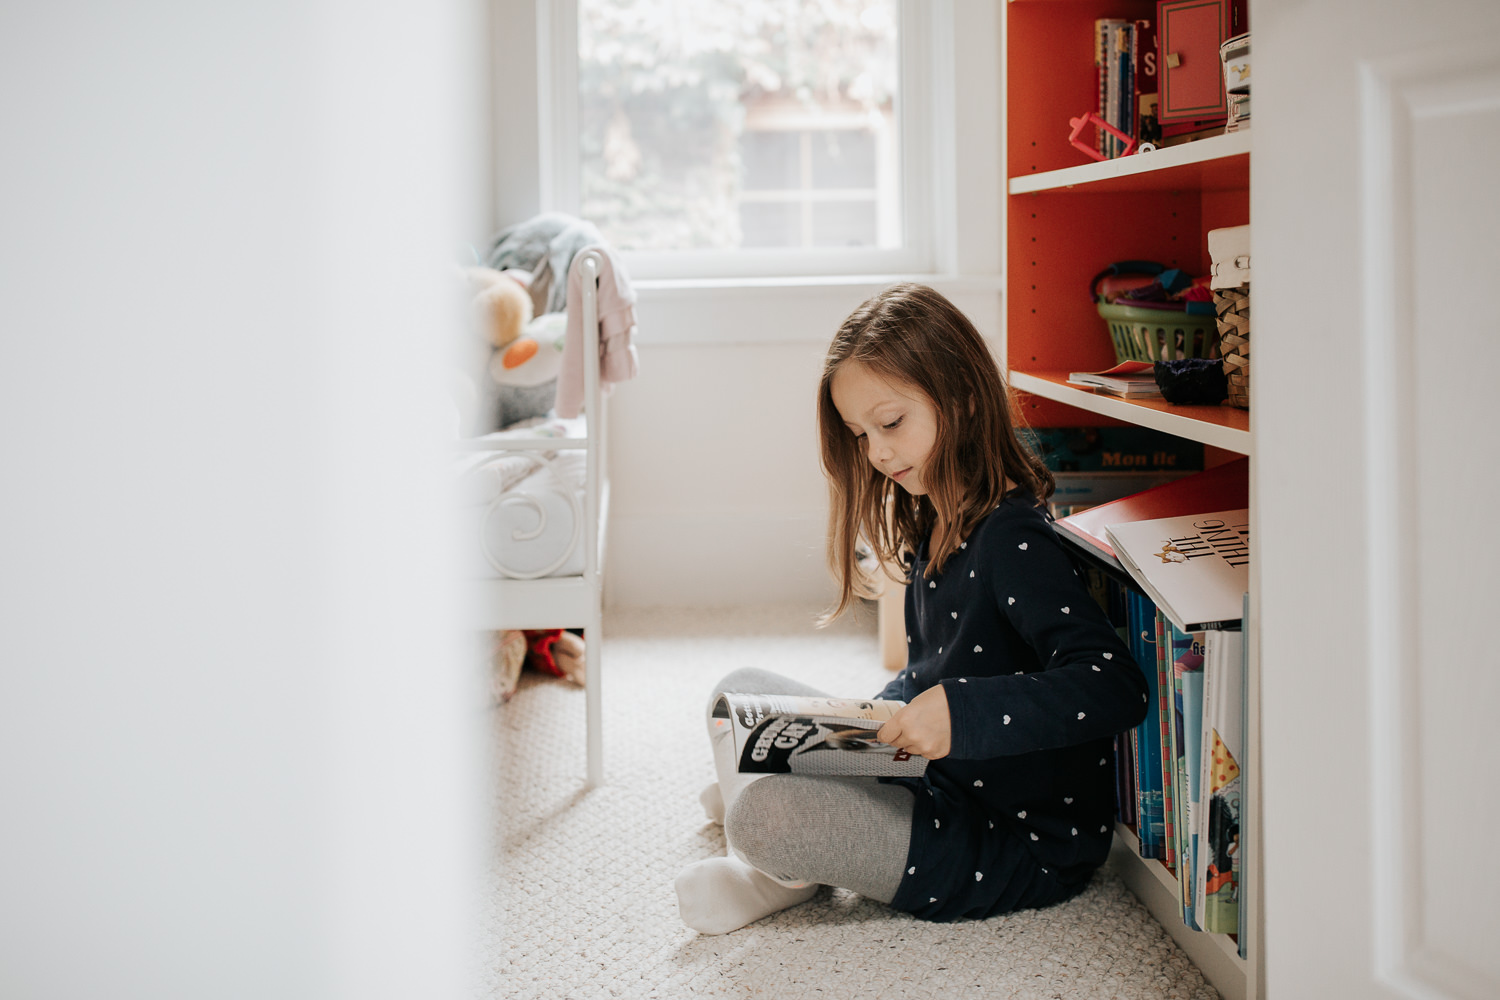 7 year old girl in polka dot dress with brown hair sitting on floor of bedroom leaning against orange and white bookcase and reading book - Stouffville In-Home Photos